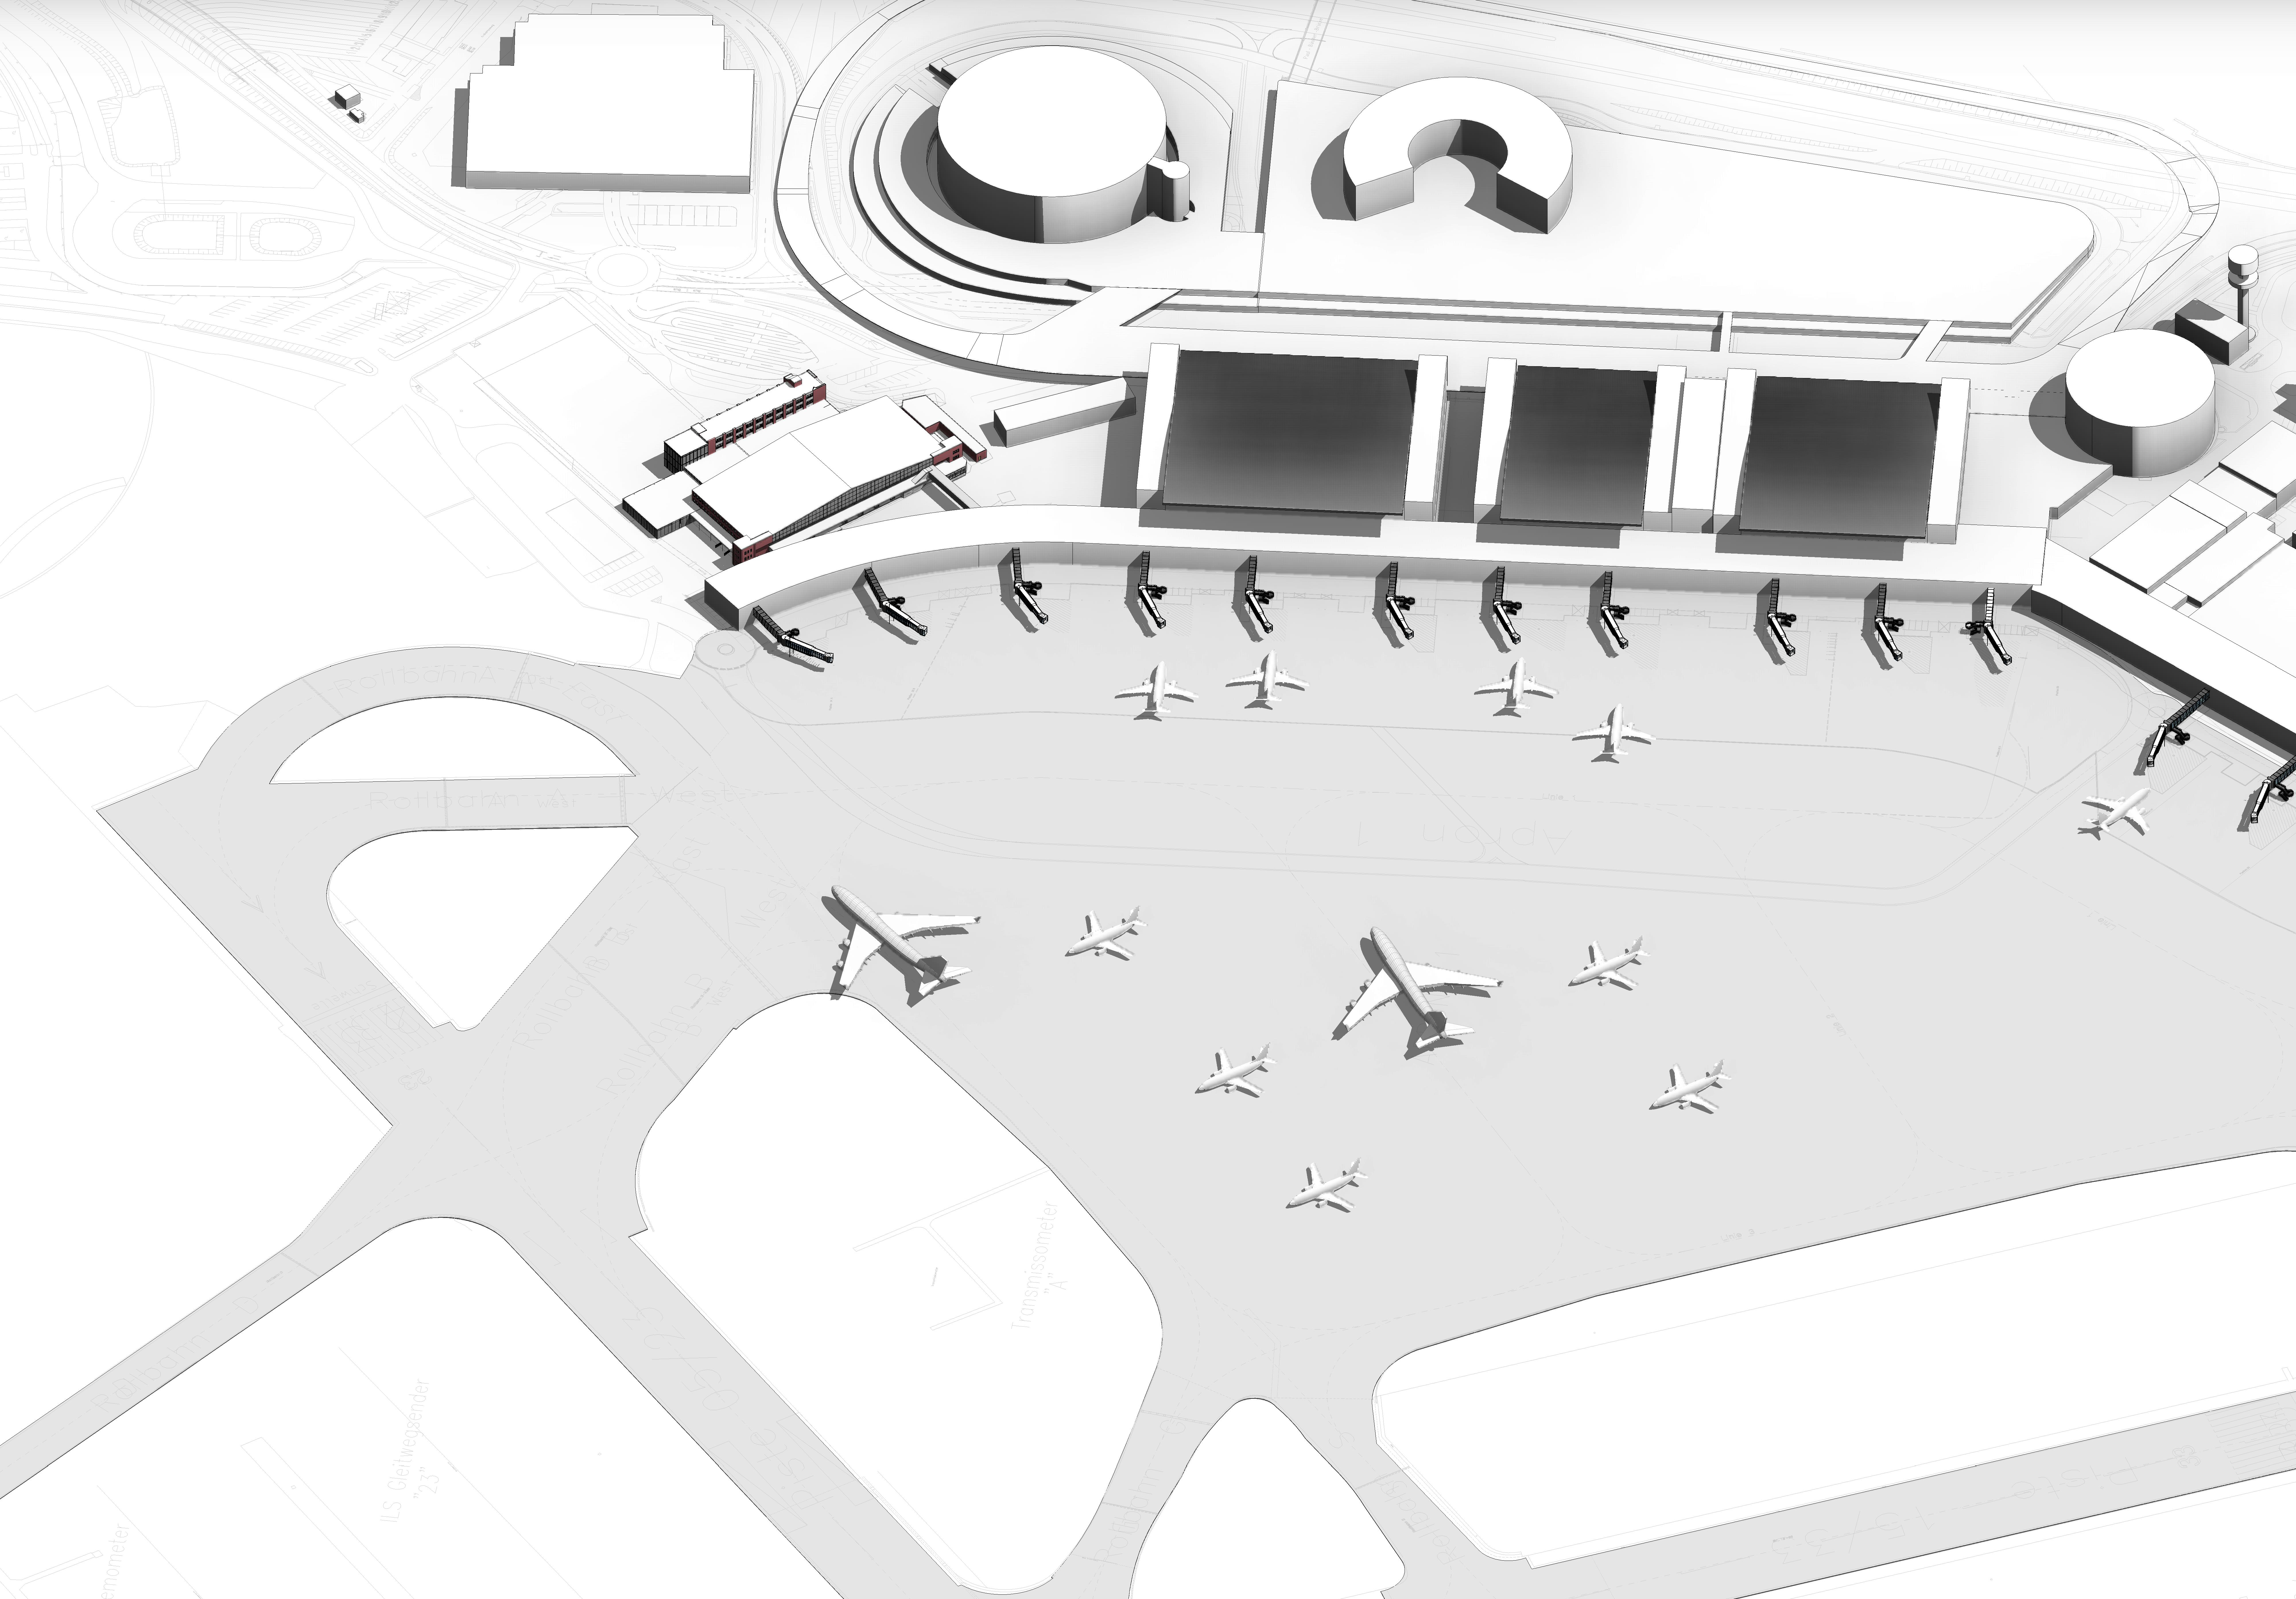 v01 - 3D View - 00 Perspective